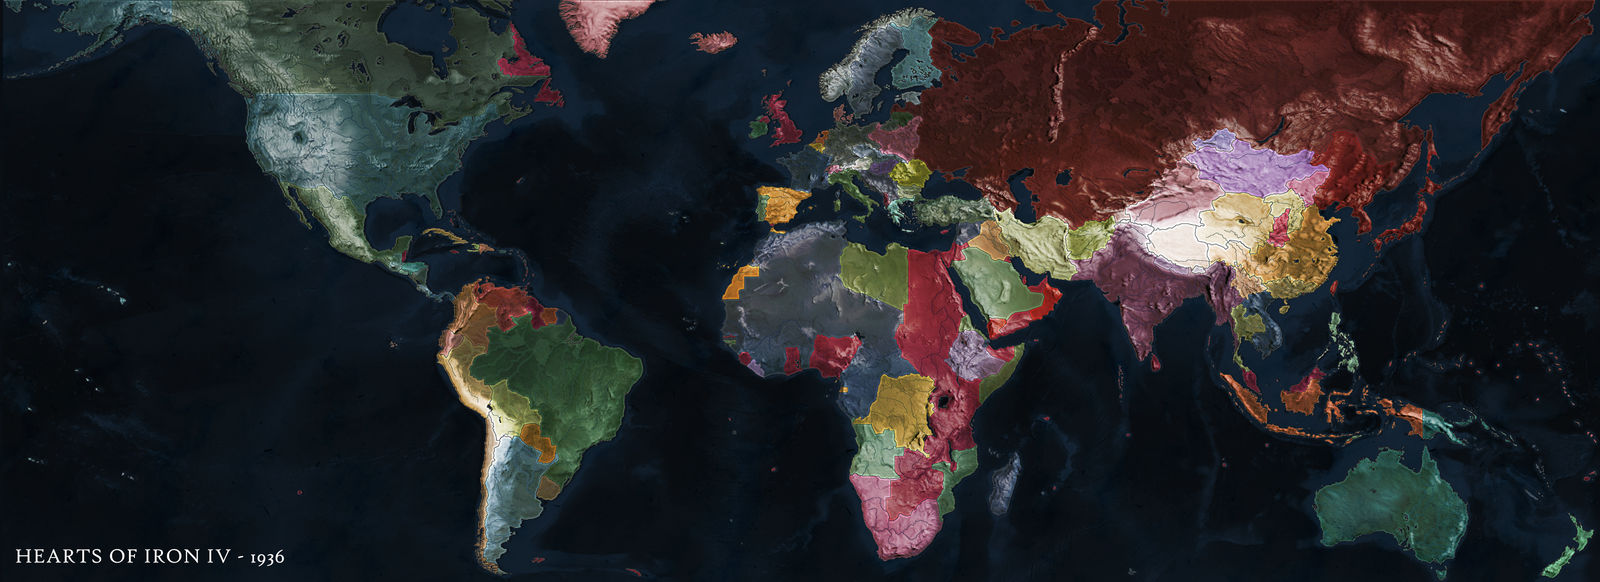 Hearts of Iron IV - 1936 by kerfank